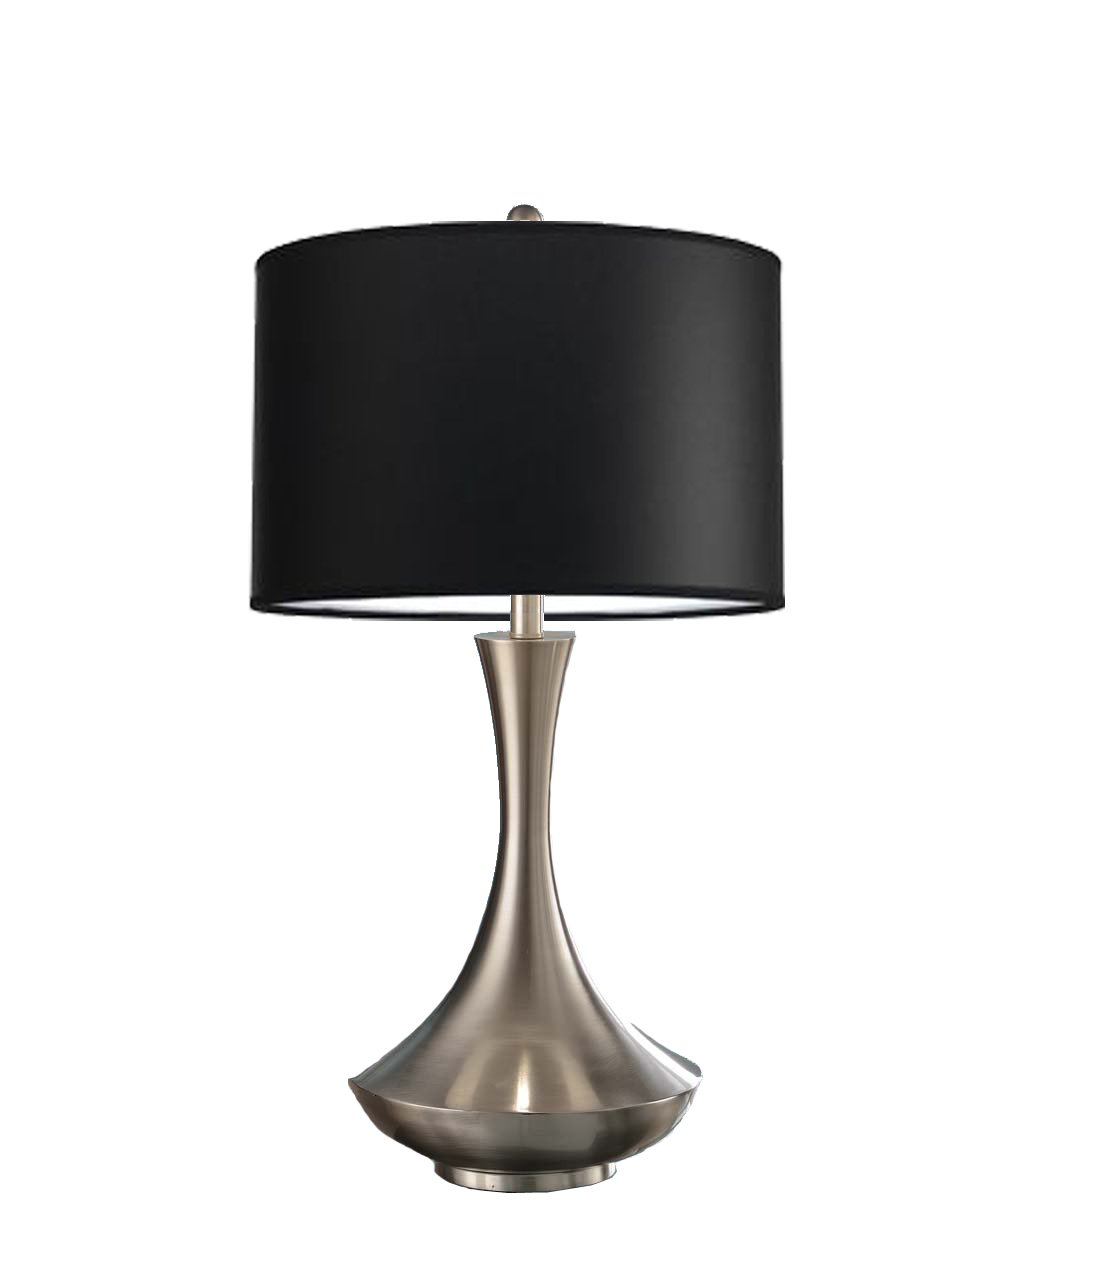 Artiva USA Aladdin, Contemporary Design, 30-Inch Brushed Steel Energy Saving Compact Fluorescent Table Lamp with Black Linen Shade by Artiva USA